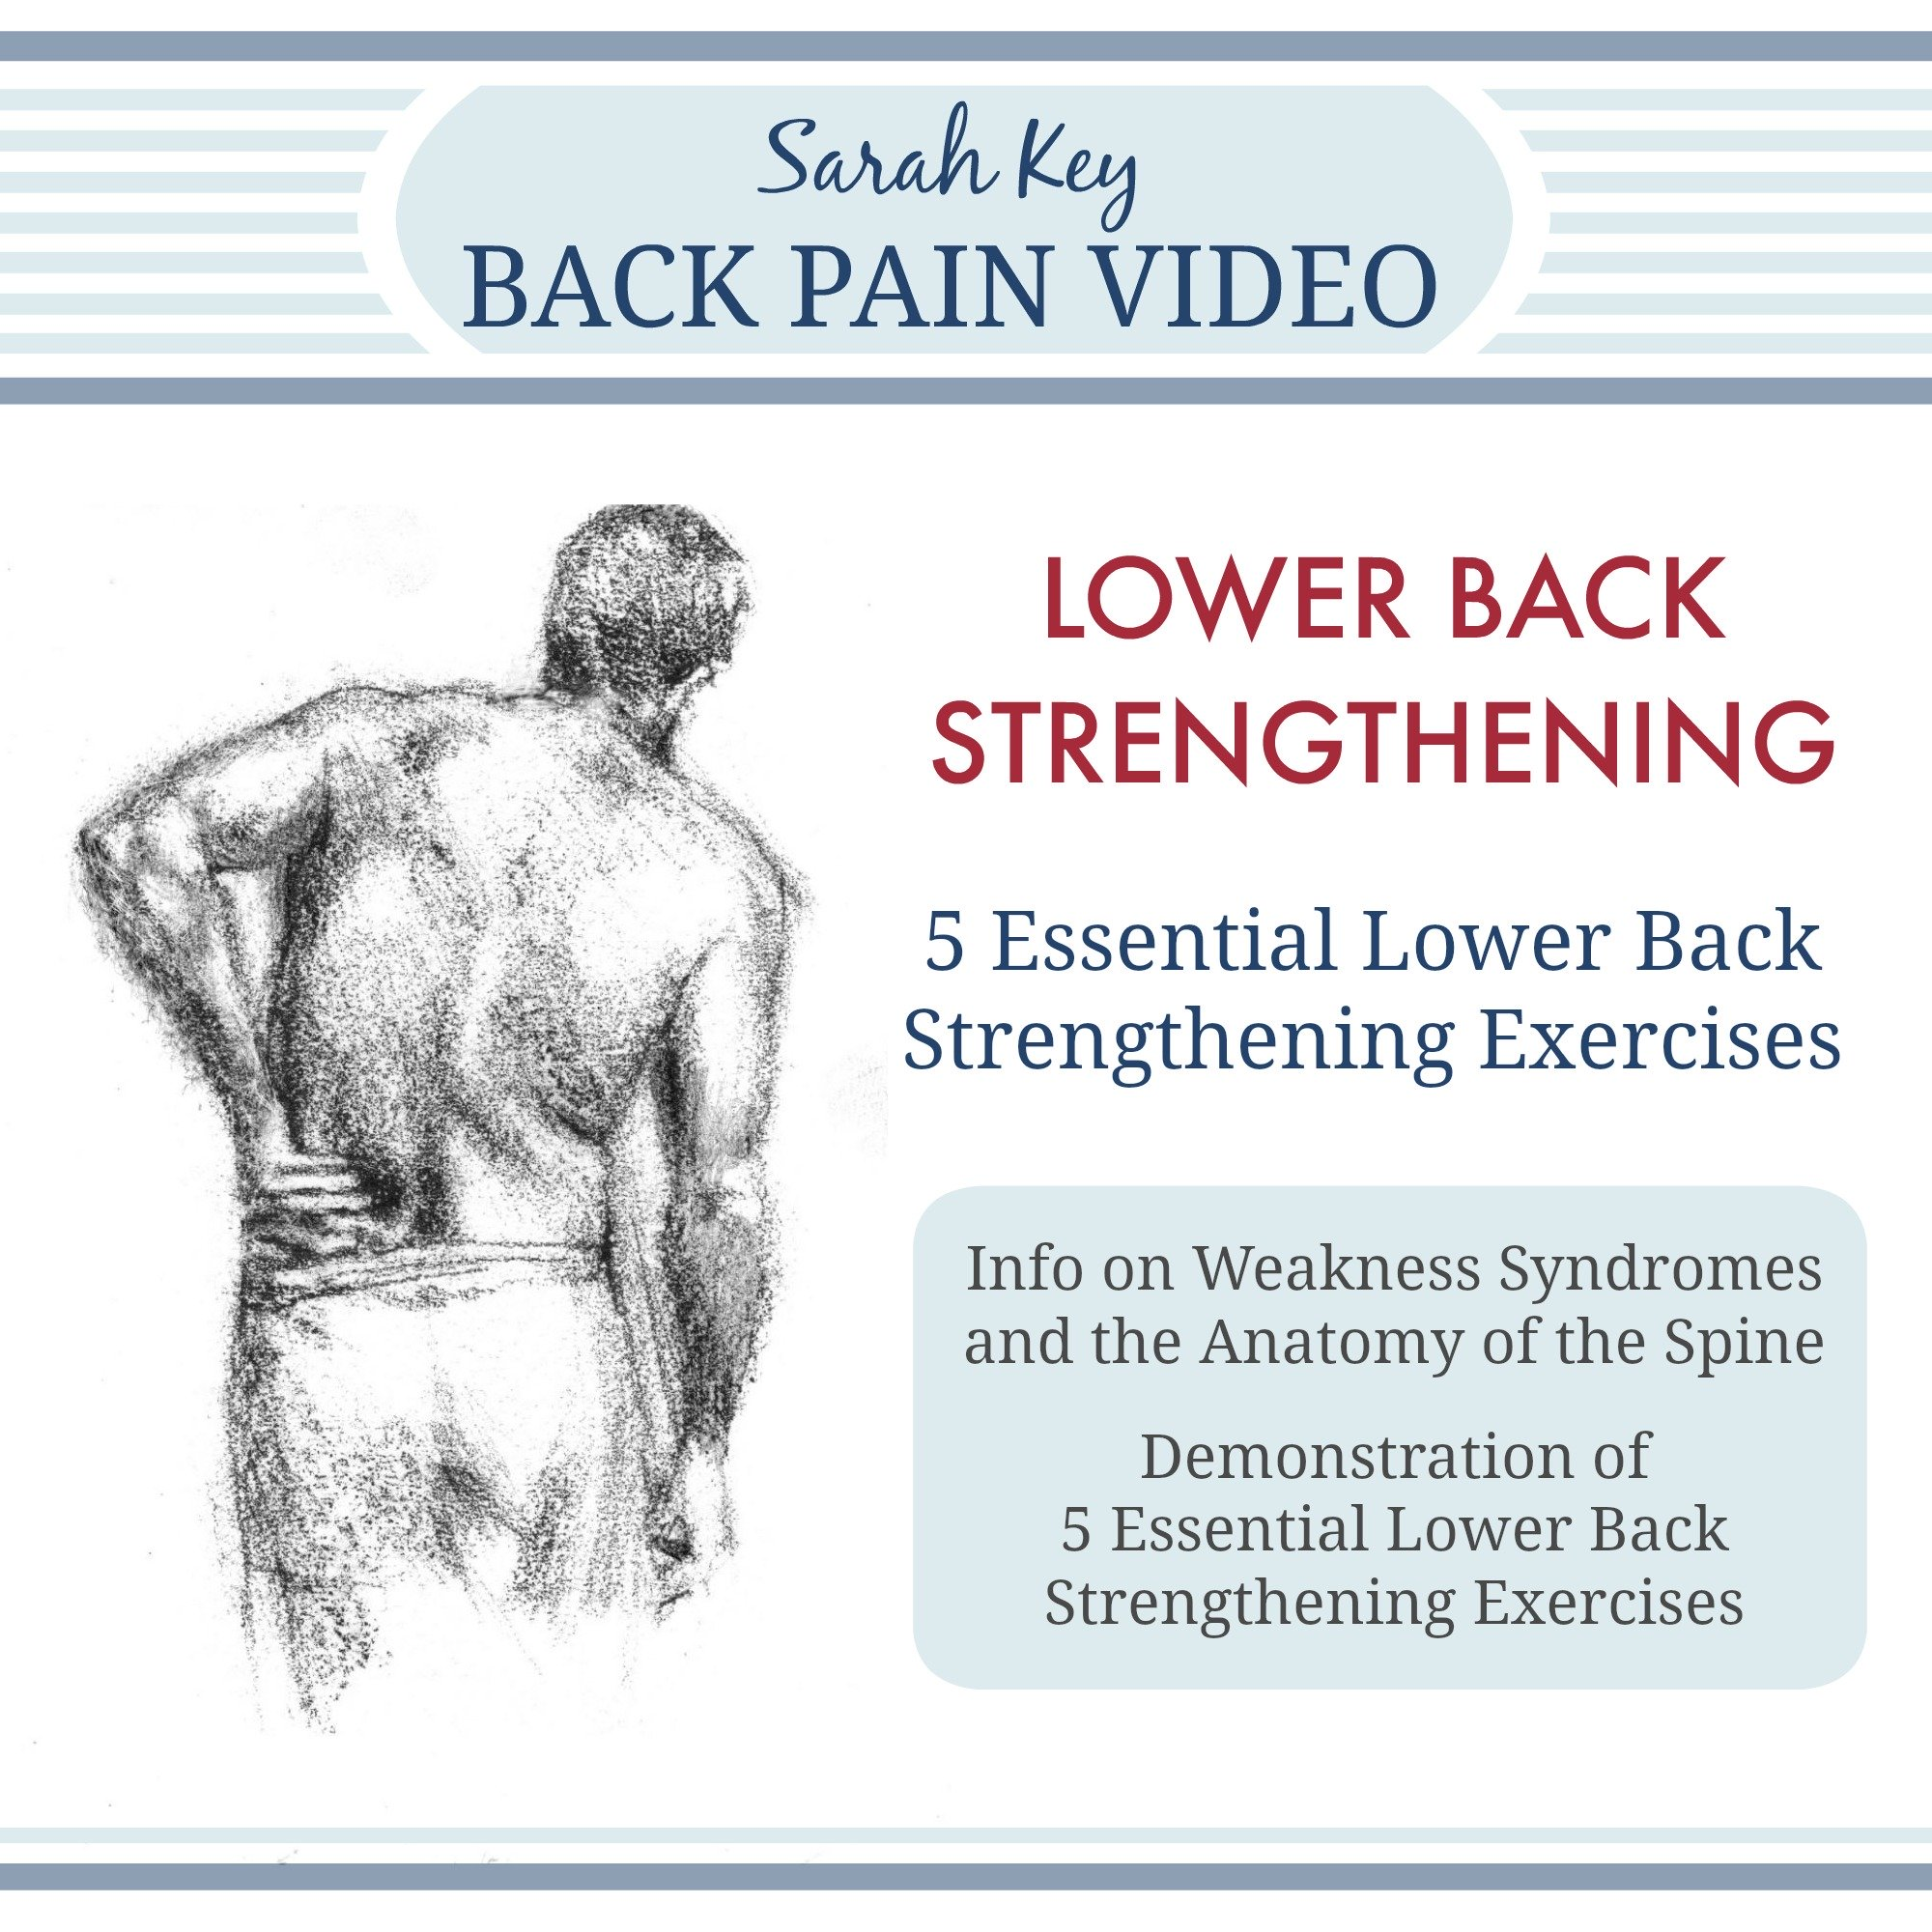 See explained the 4 grades of intrinsic spinal strengthening exercises